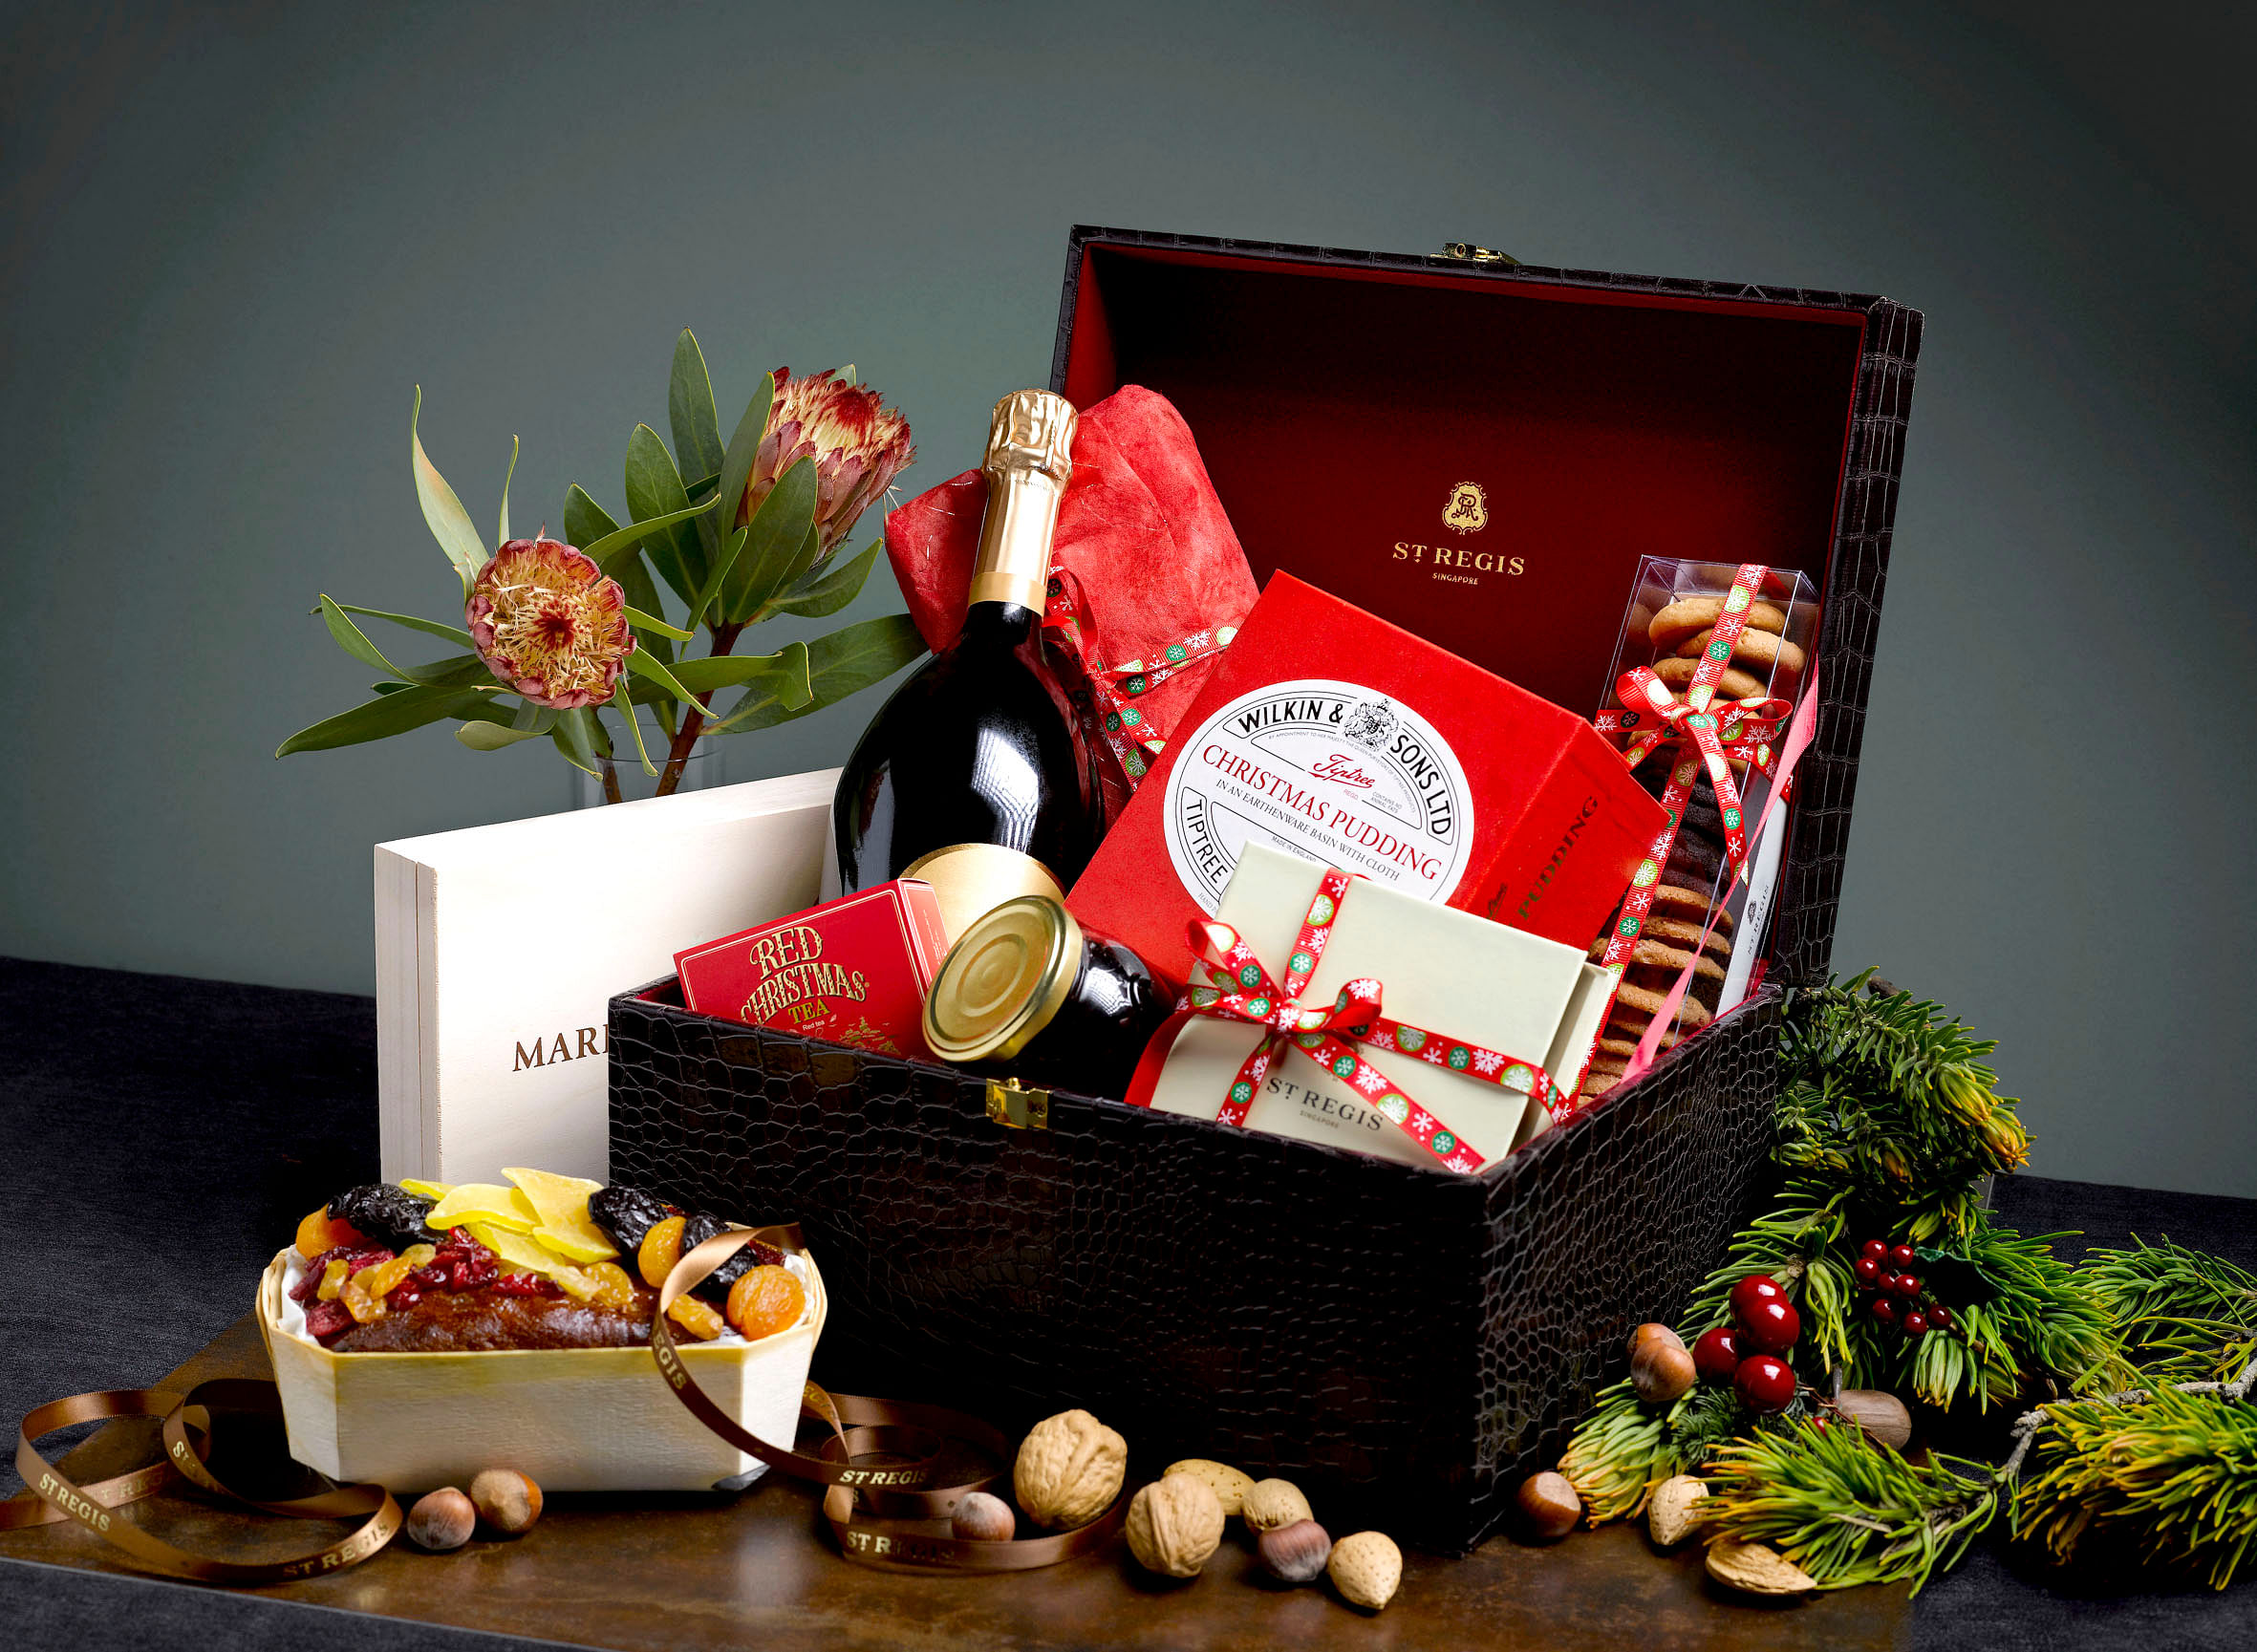 9 Food Hampers To Get For Friends Family And Business Associates For Christmas Food News Top Stories The Straits Times